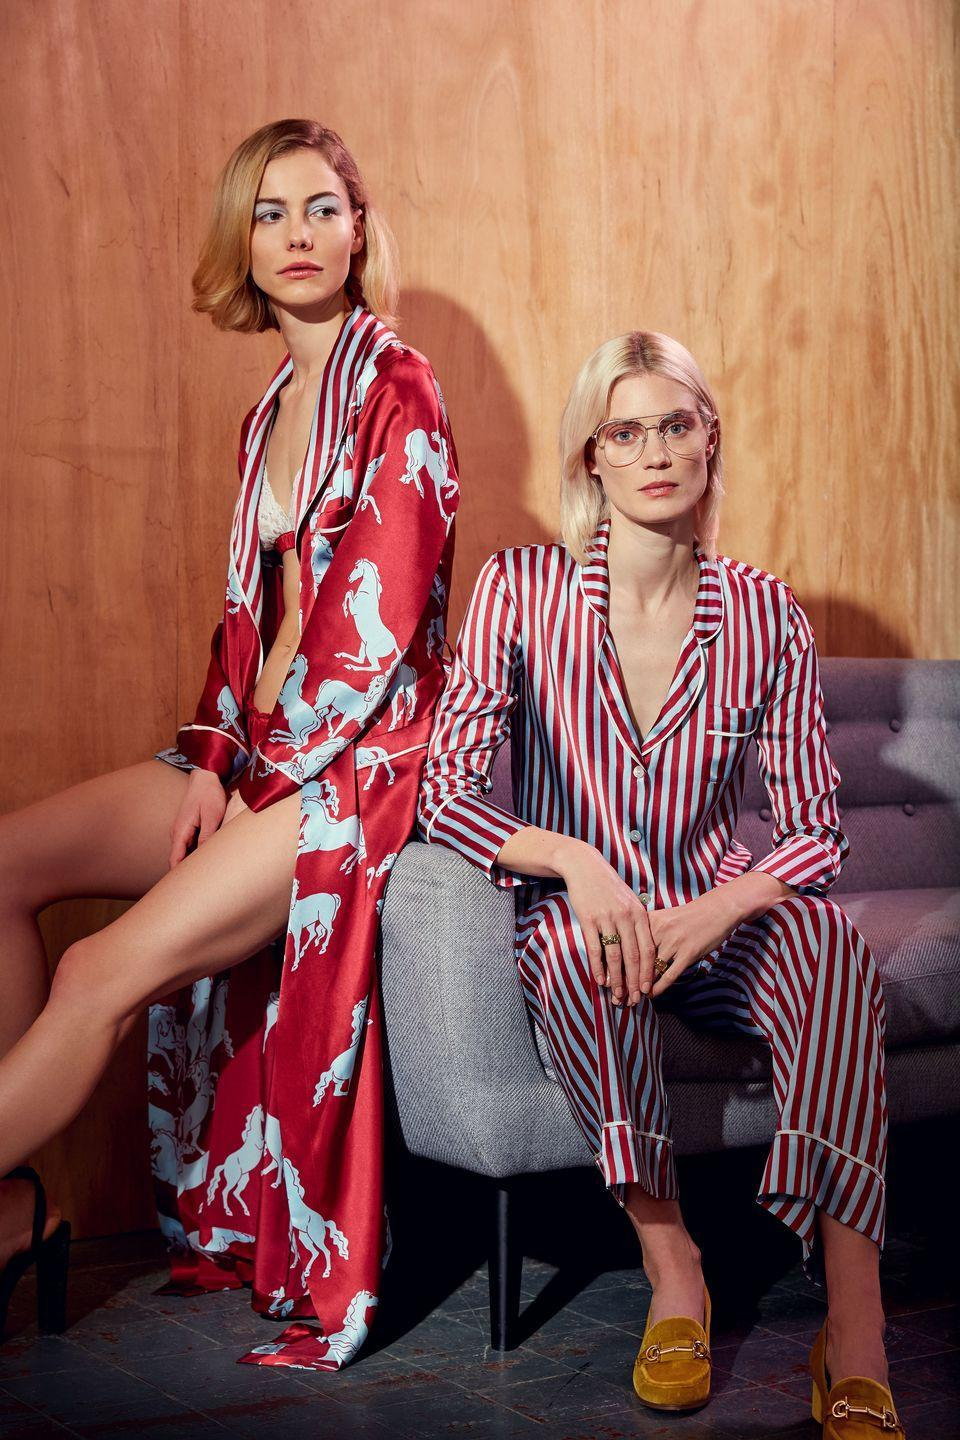 """<p><a class=""""link rapid-noclick-resp"""" href=""""https://hesperfox.com/"""" rel=""""nofollow noopener"""" target=""""_blank"""" data-ylk=""""slk:SHOP NOW"""">SHOP NOW</a></p><p>London-based sleepwear brand Hesper Fox focuses on colourful printed pyjamas made in crisp cottons, cool linens and luxurious silks. Whether you decide to wear them at home or to brunch, the label's playful pyjama sets are among our favourites. Its new resortwear line and its uplifting, vibrant appeal is also well worth browsing.</p>"""